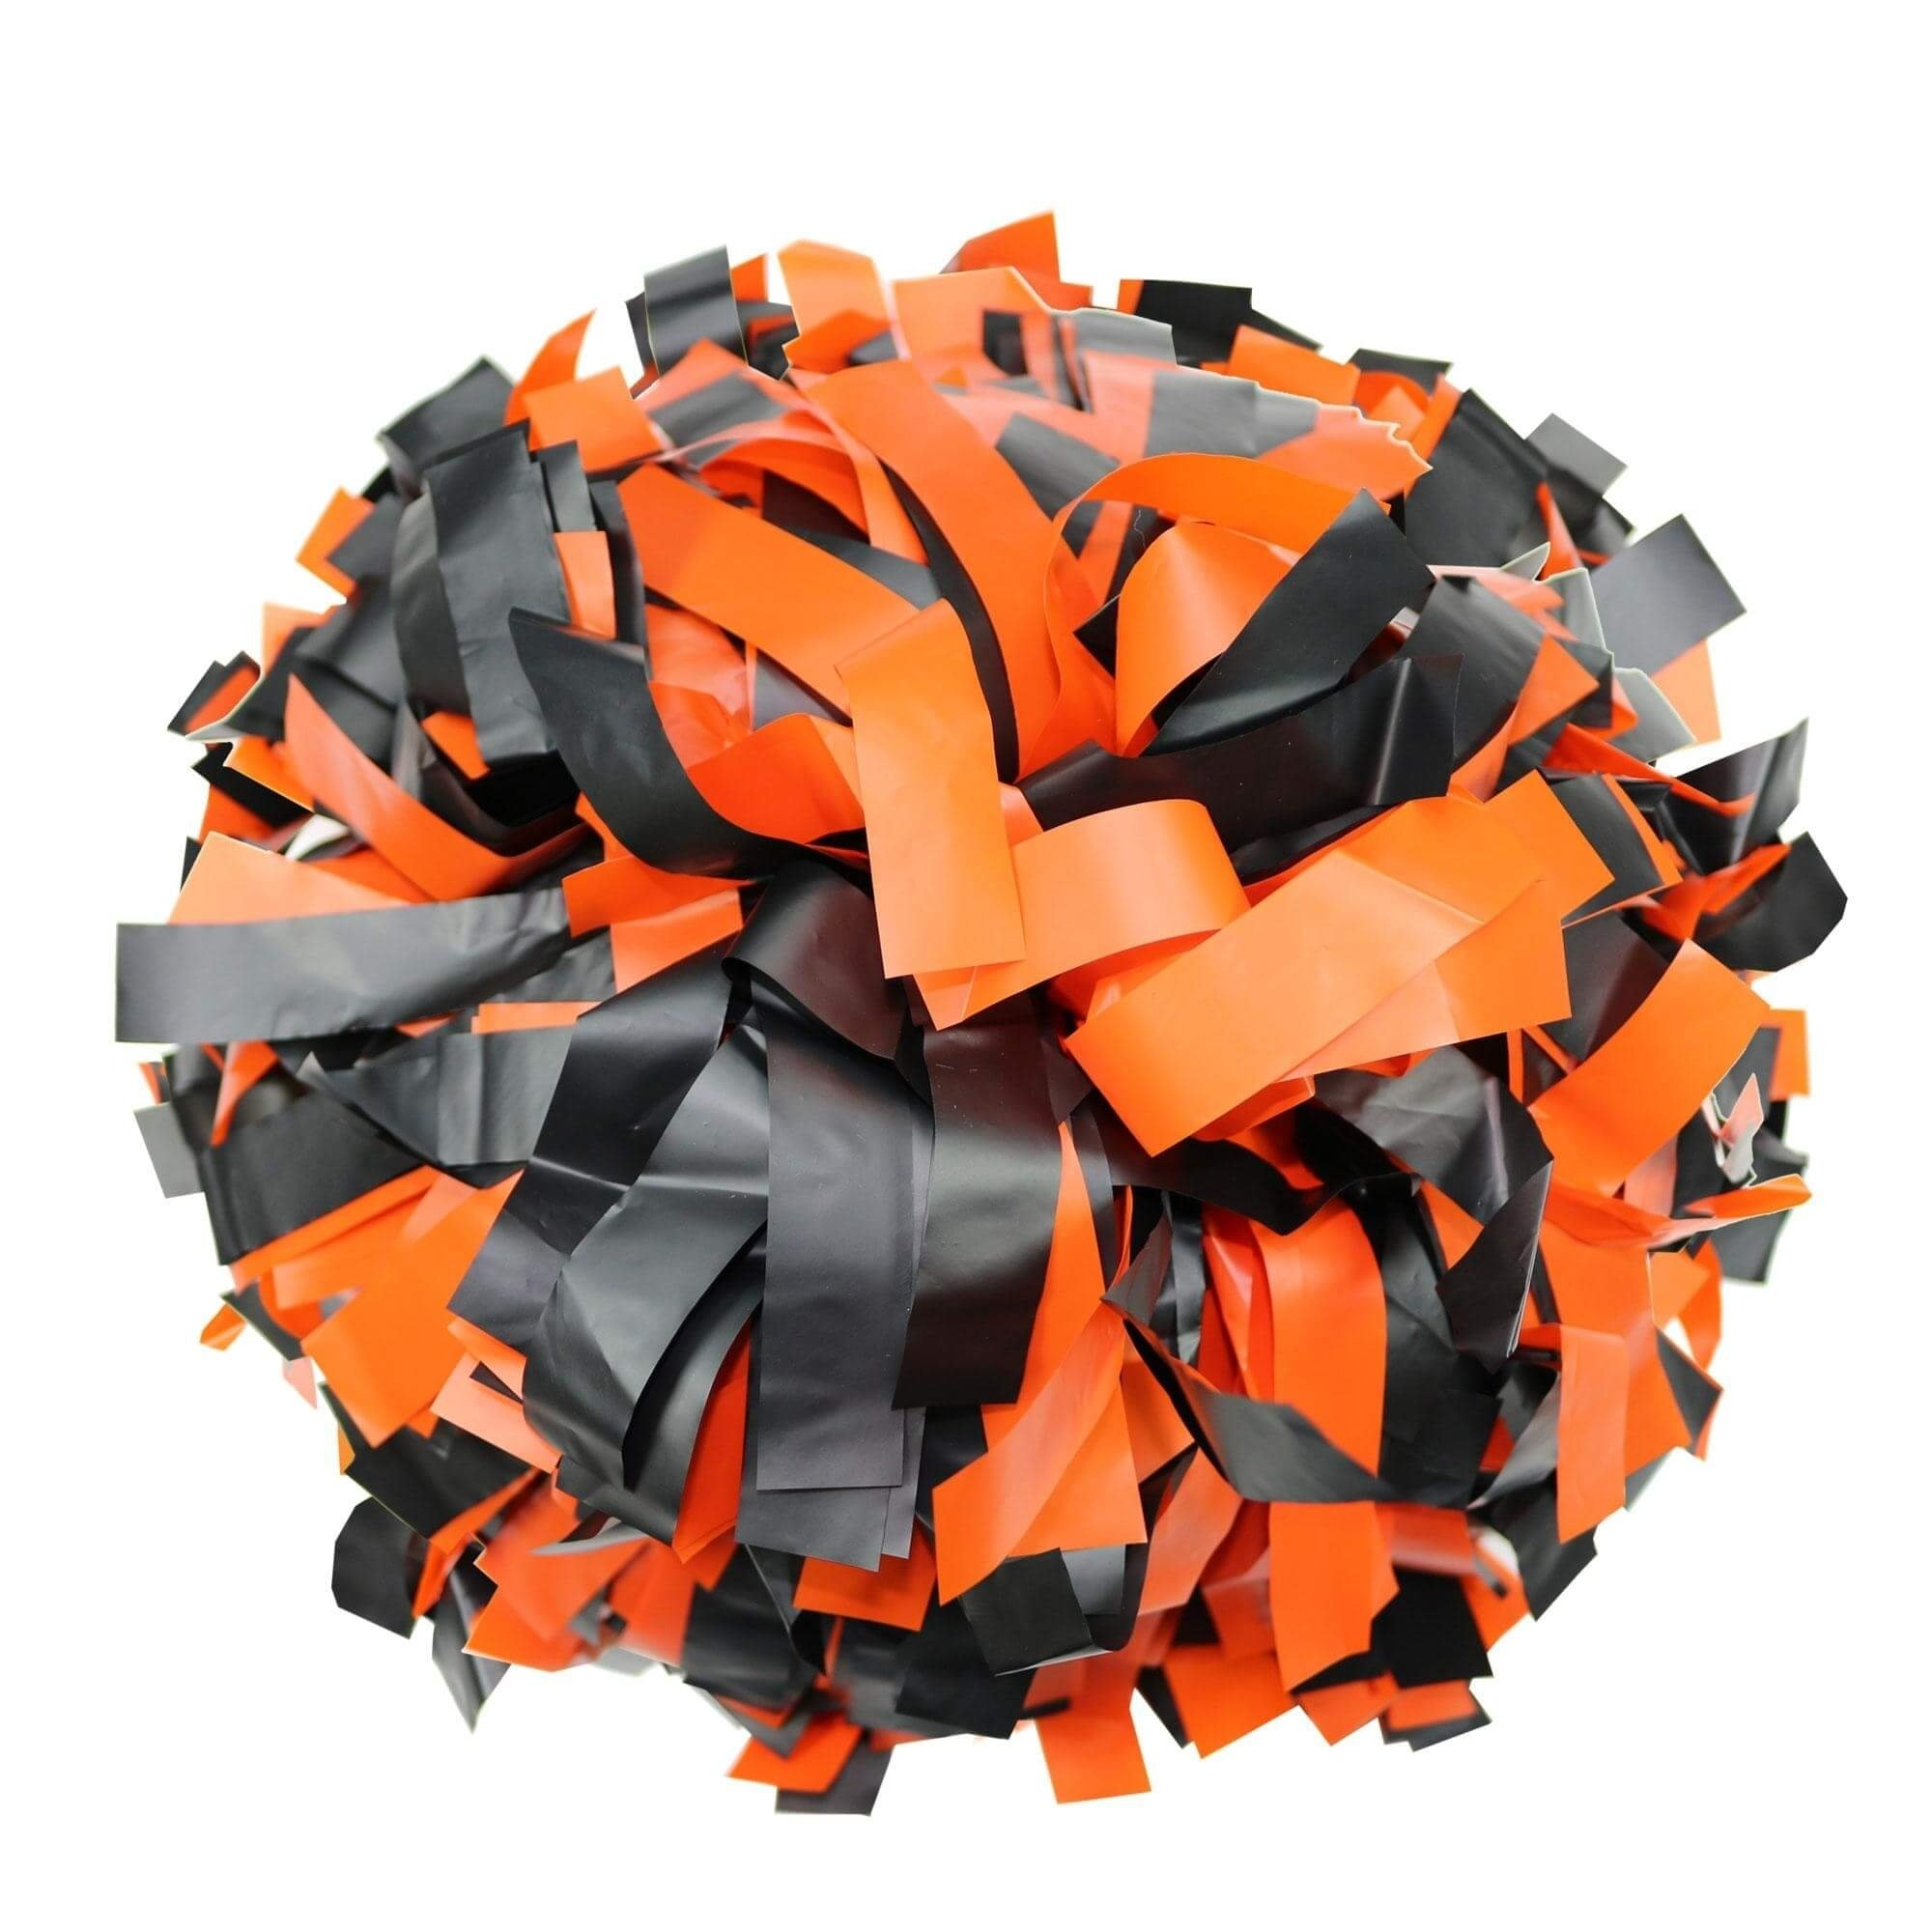 Danzcue Orange/Black Plastic Poms - One Pair